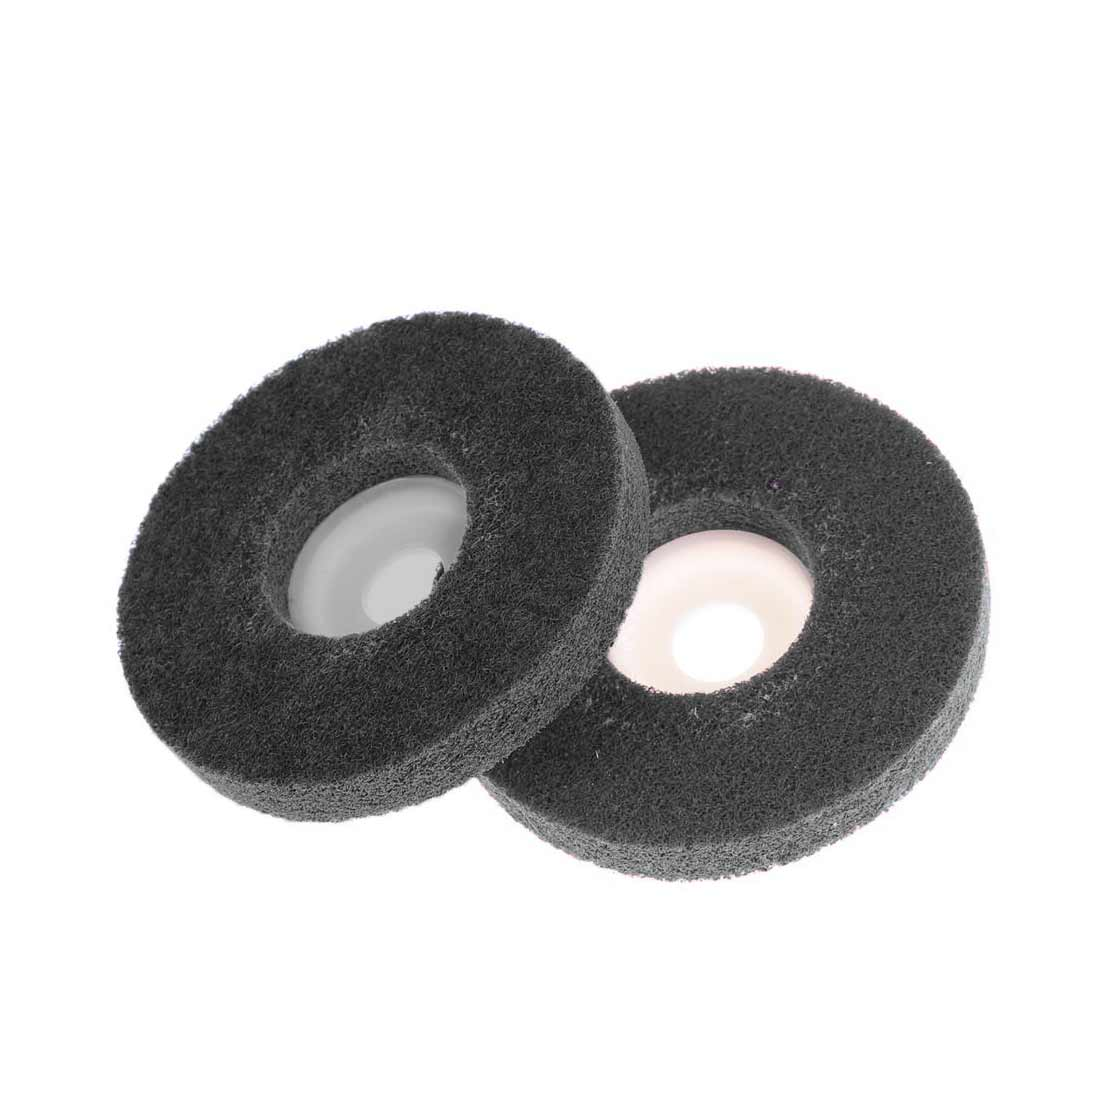 100*12*16mm Nylon Grinding Disc 180# Non-woven Unitized Polishing Wheel For Soft Metal Stainless Steel